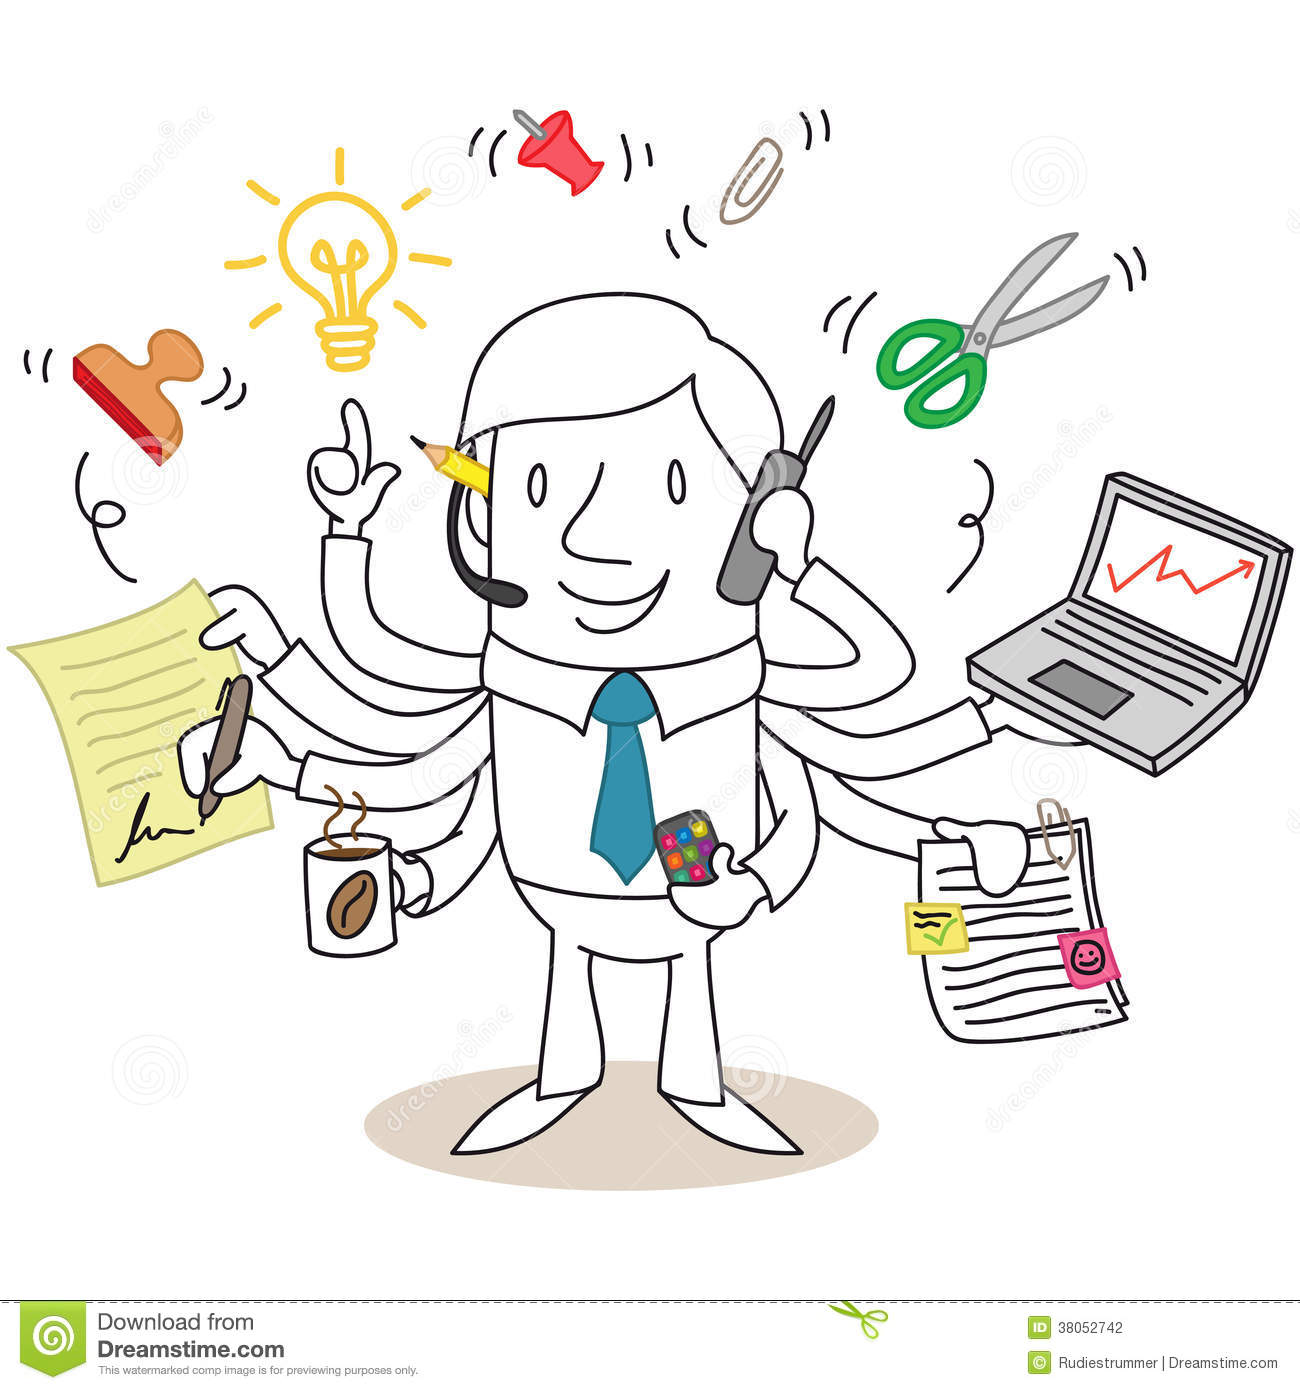 Assiduous Businessman Multitasking Stock Photography - Image: 38052742